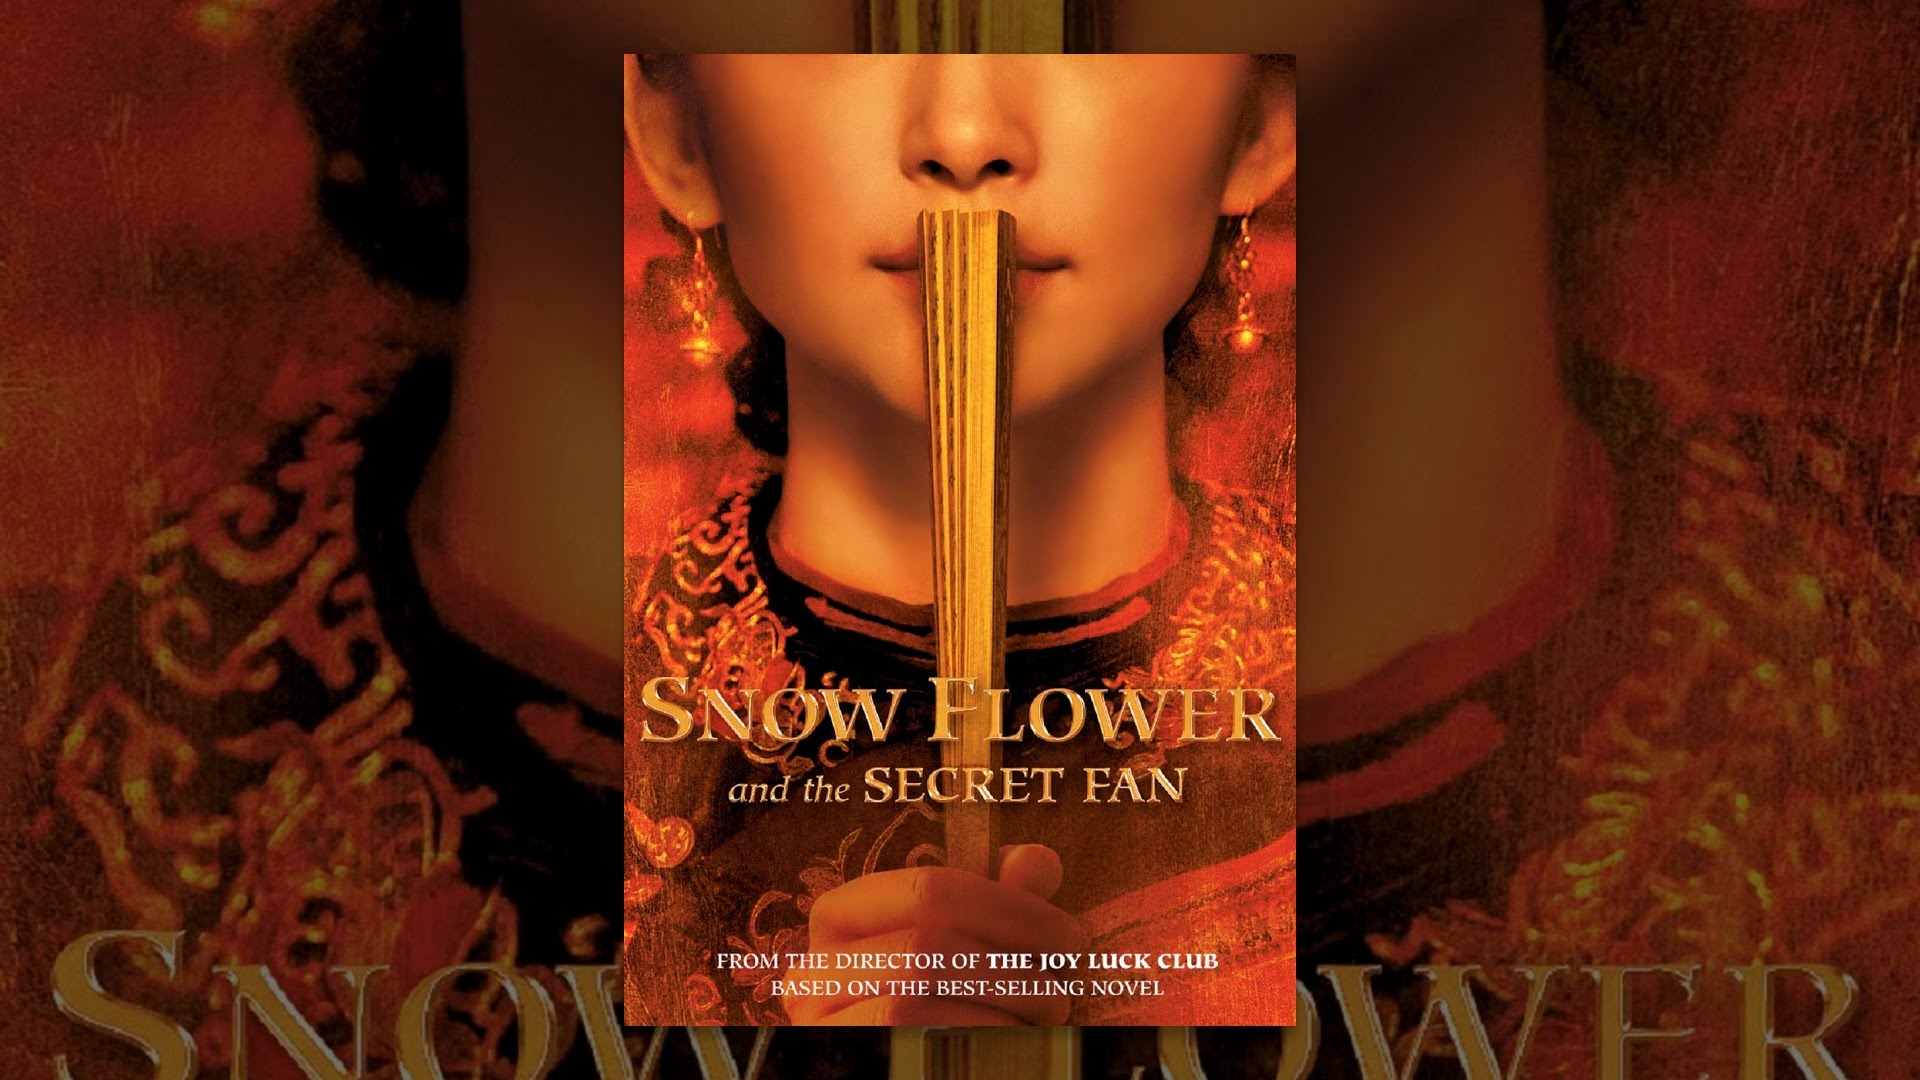 snow flower and the secret fan essay Well-written essay in which you analyze hardy's portrayal of the complex snow flower and the secret fan ap english literature 2016 free-response questions.